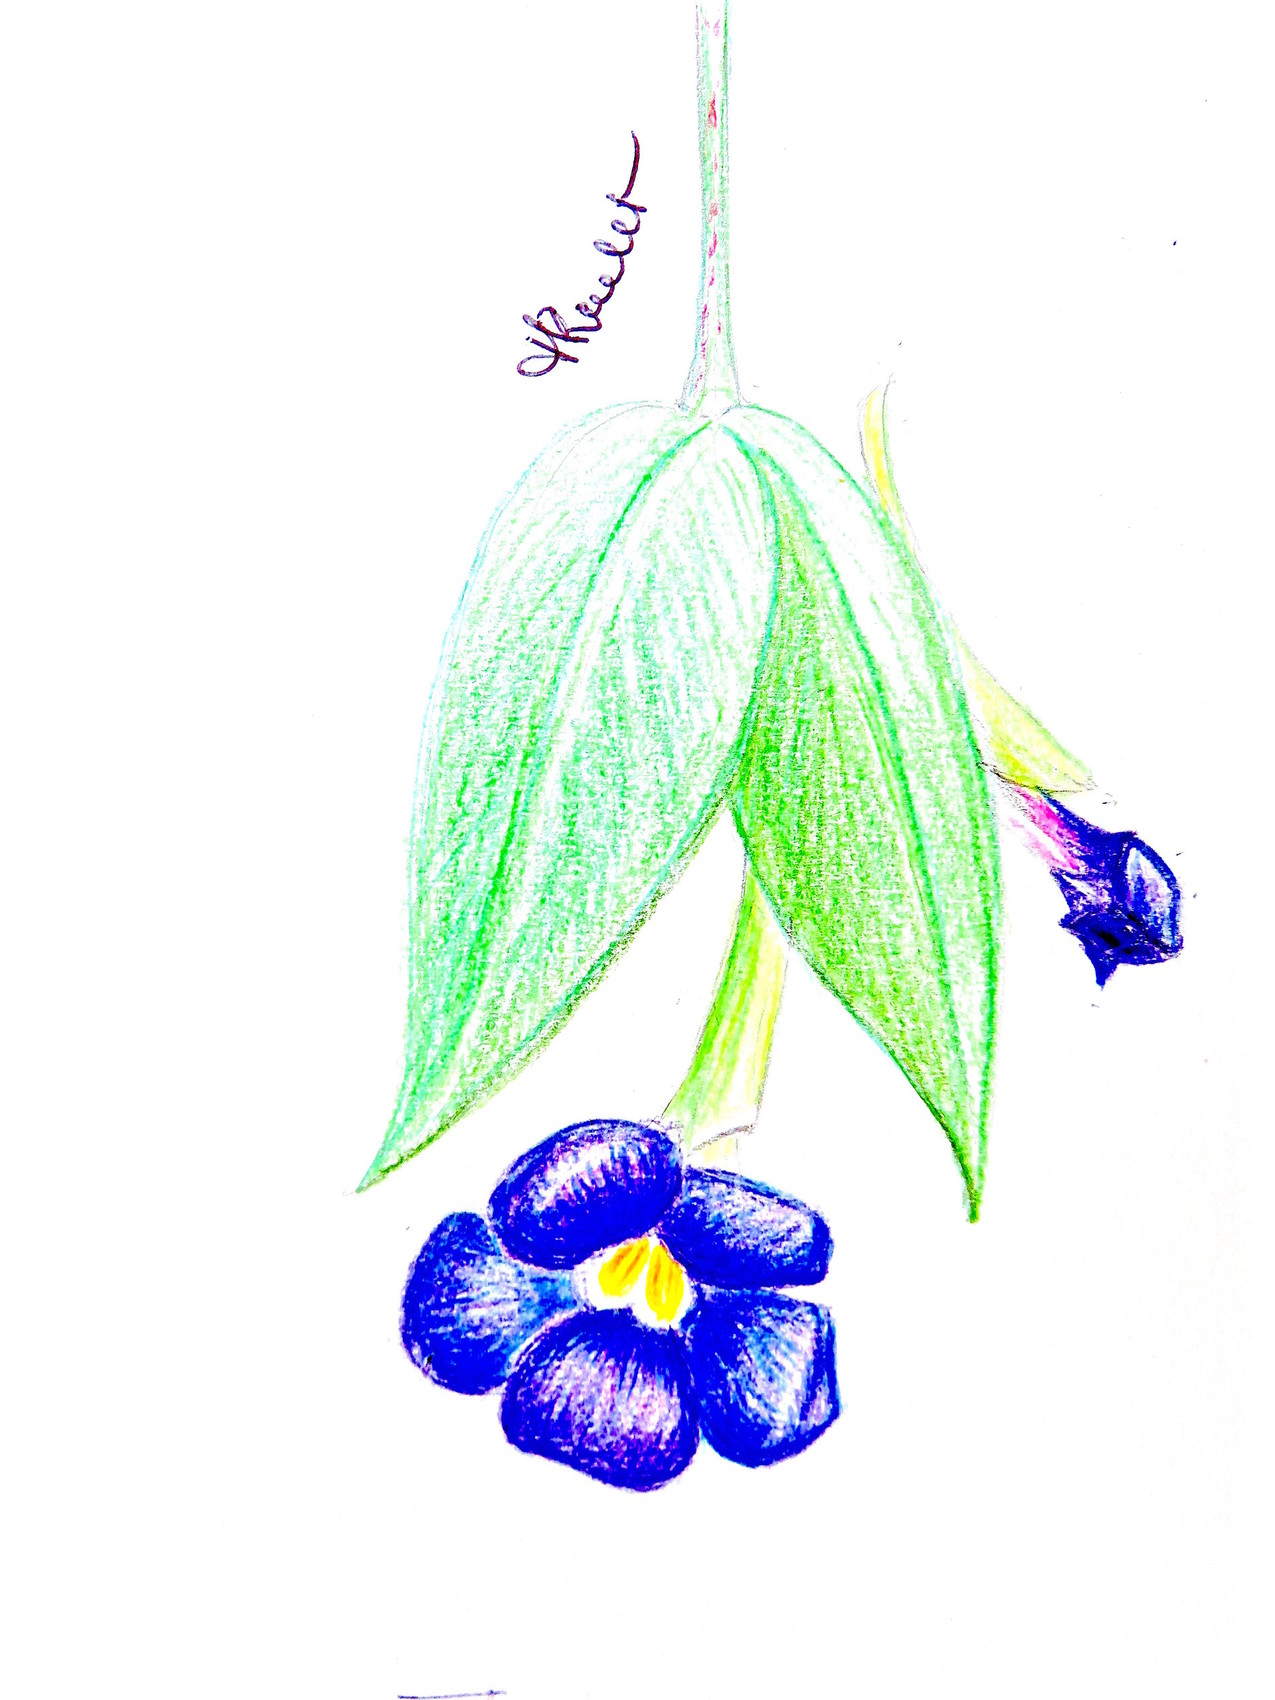 Dessin Fleur Bleue Thunbergie Erigee Thunbergia Erecta Drawing A